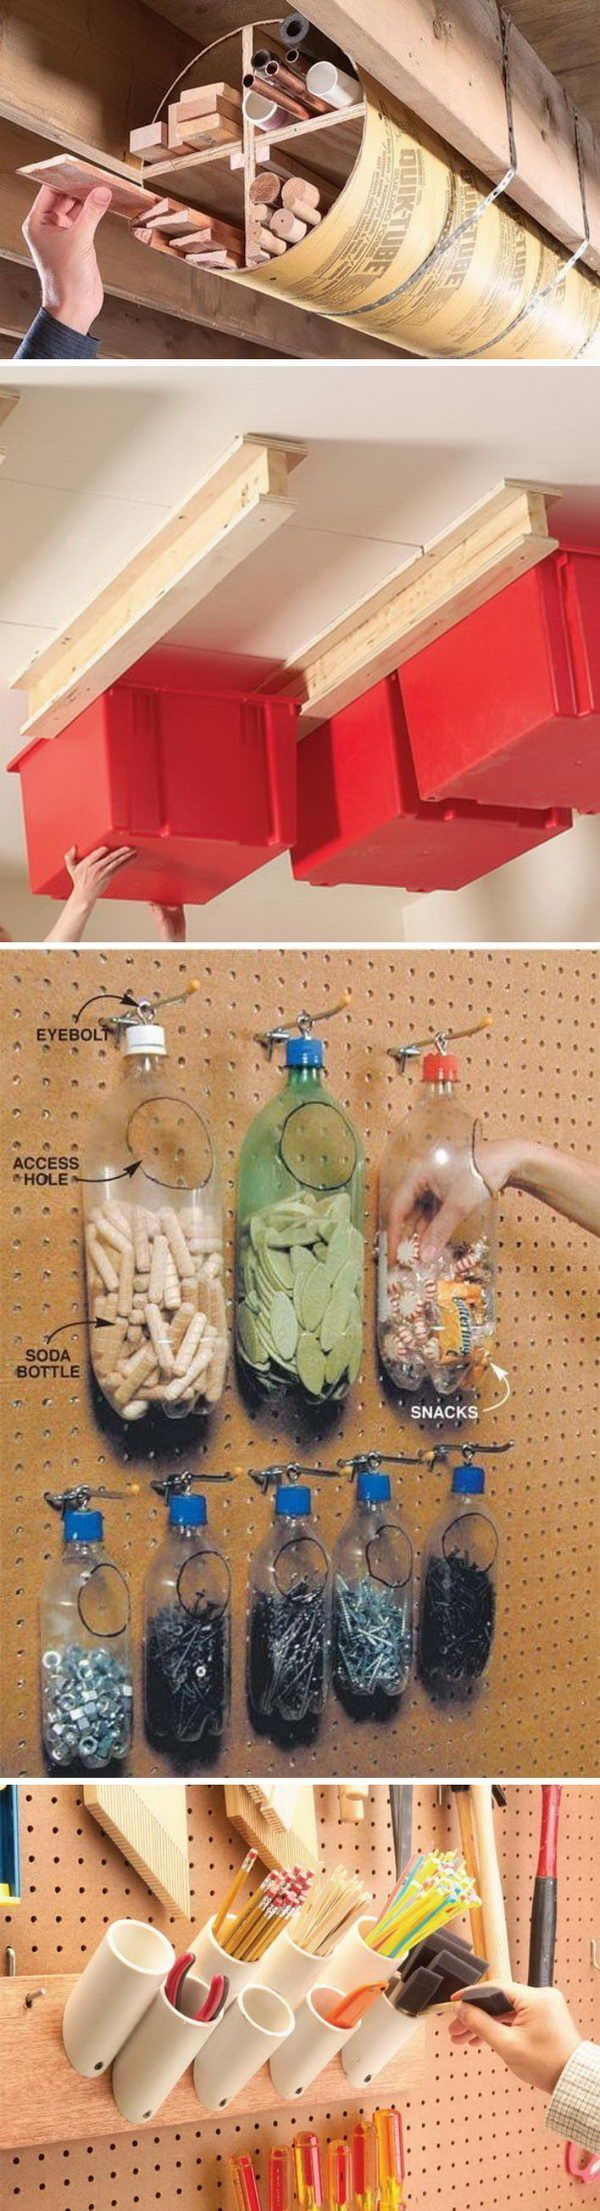 Clever Garage Storage and Organization Ideasclever